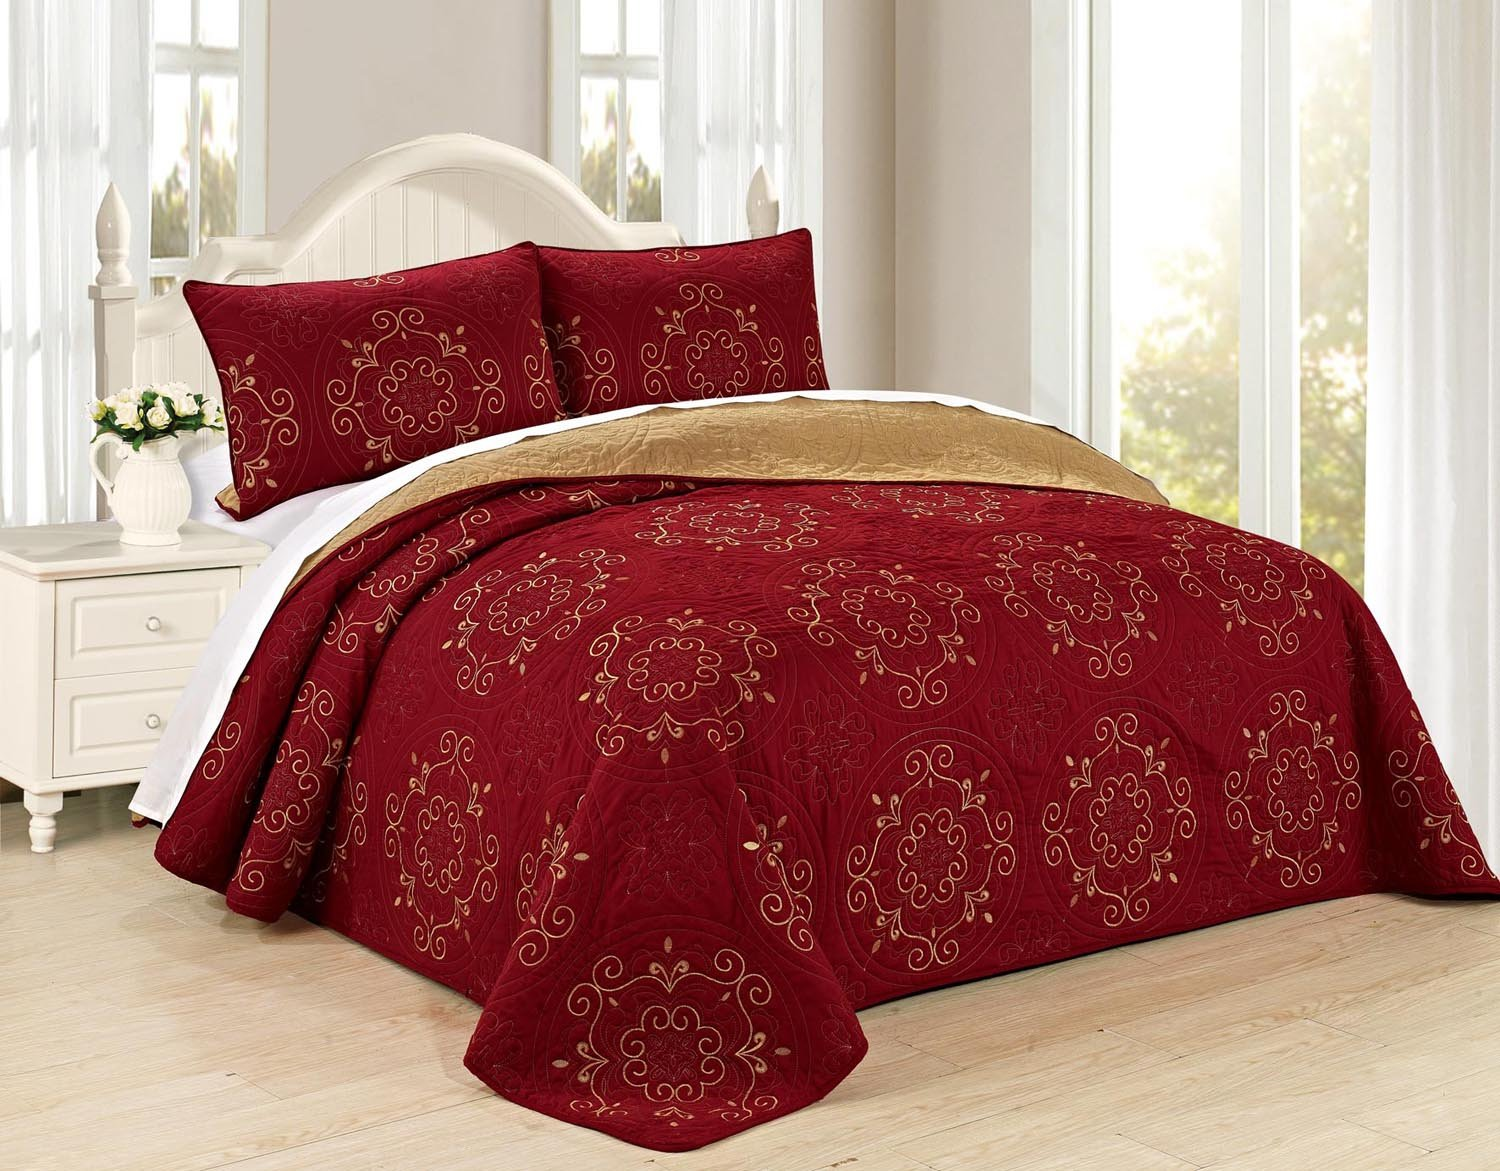 All American Collection New 3pc Circle Reversible Embroidered Bedspread/Quilt Set (King 3pc, Burgundy)